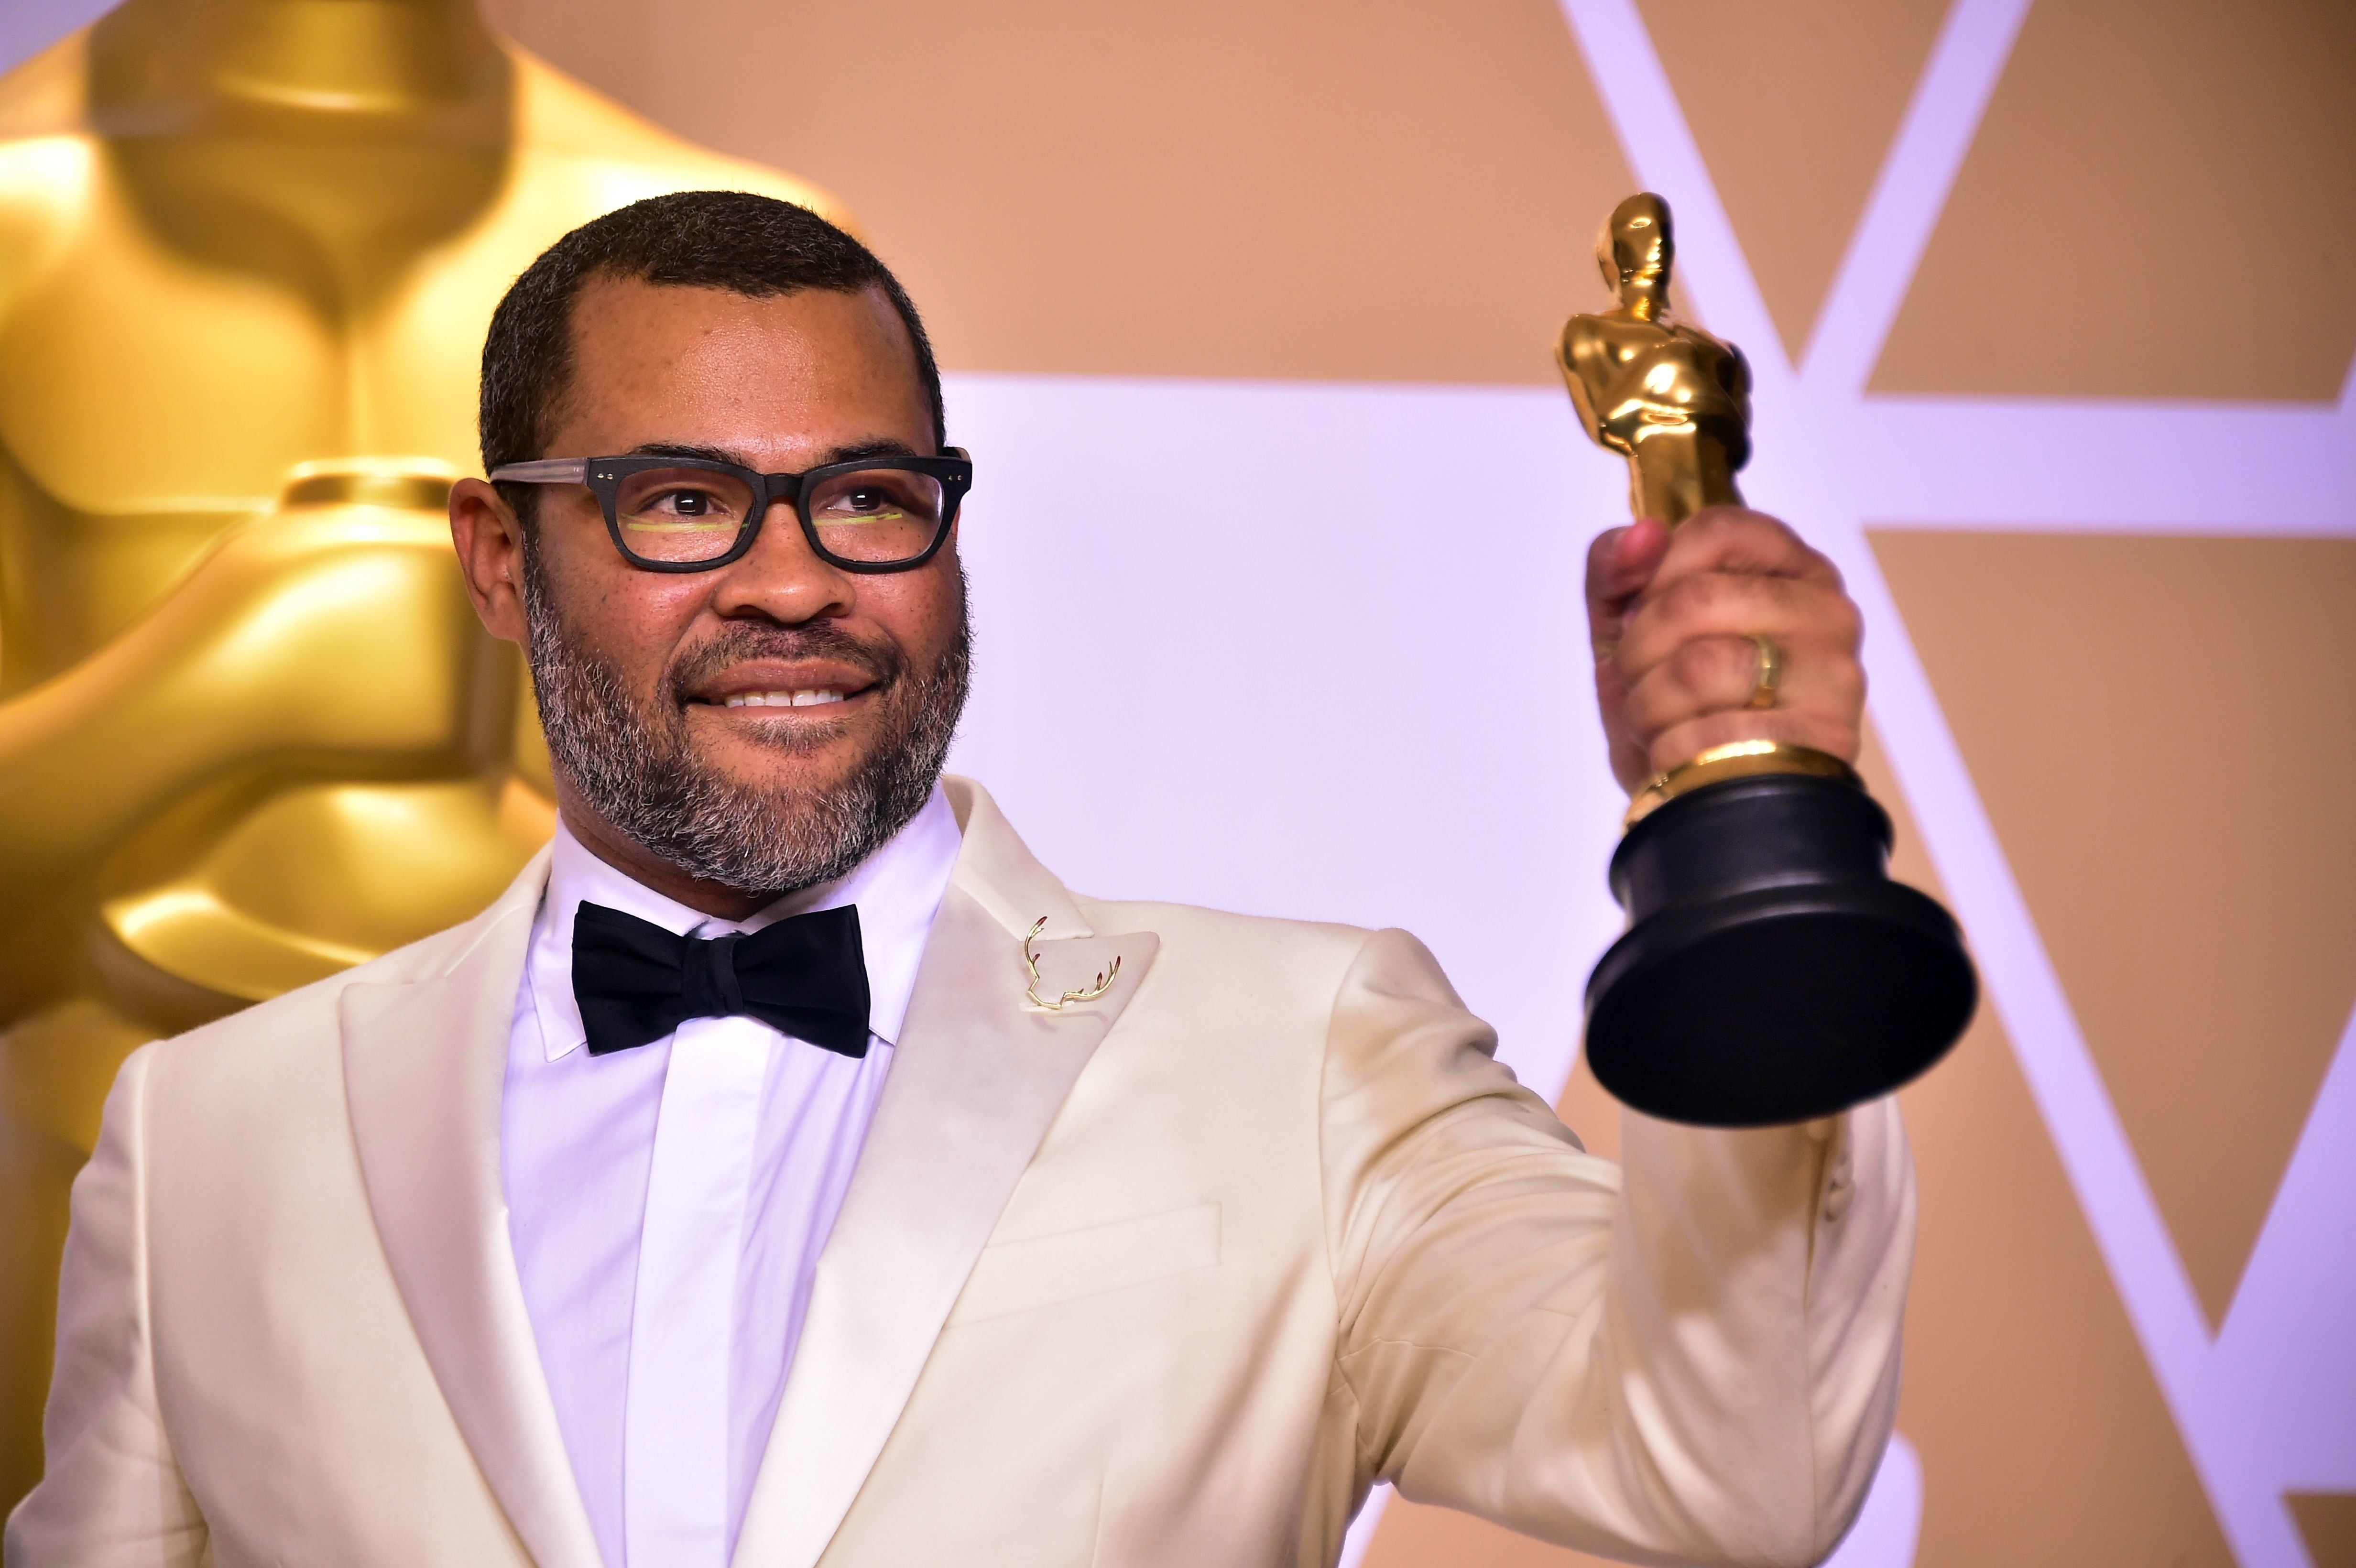 Jordan Peele's 'New Nightmare' Is Coming Out Next